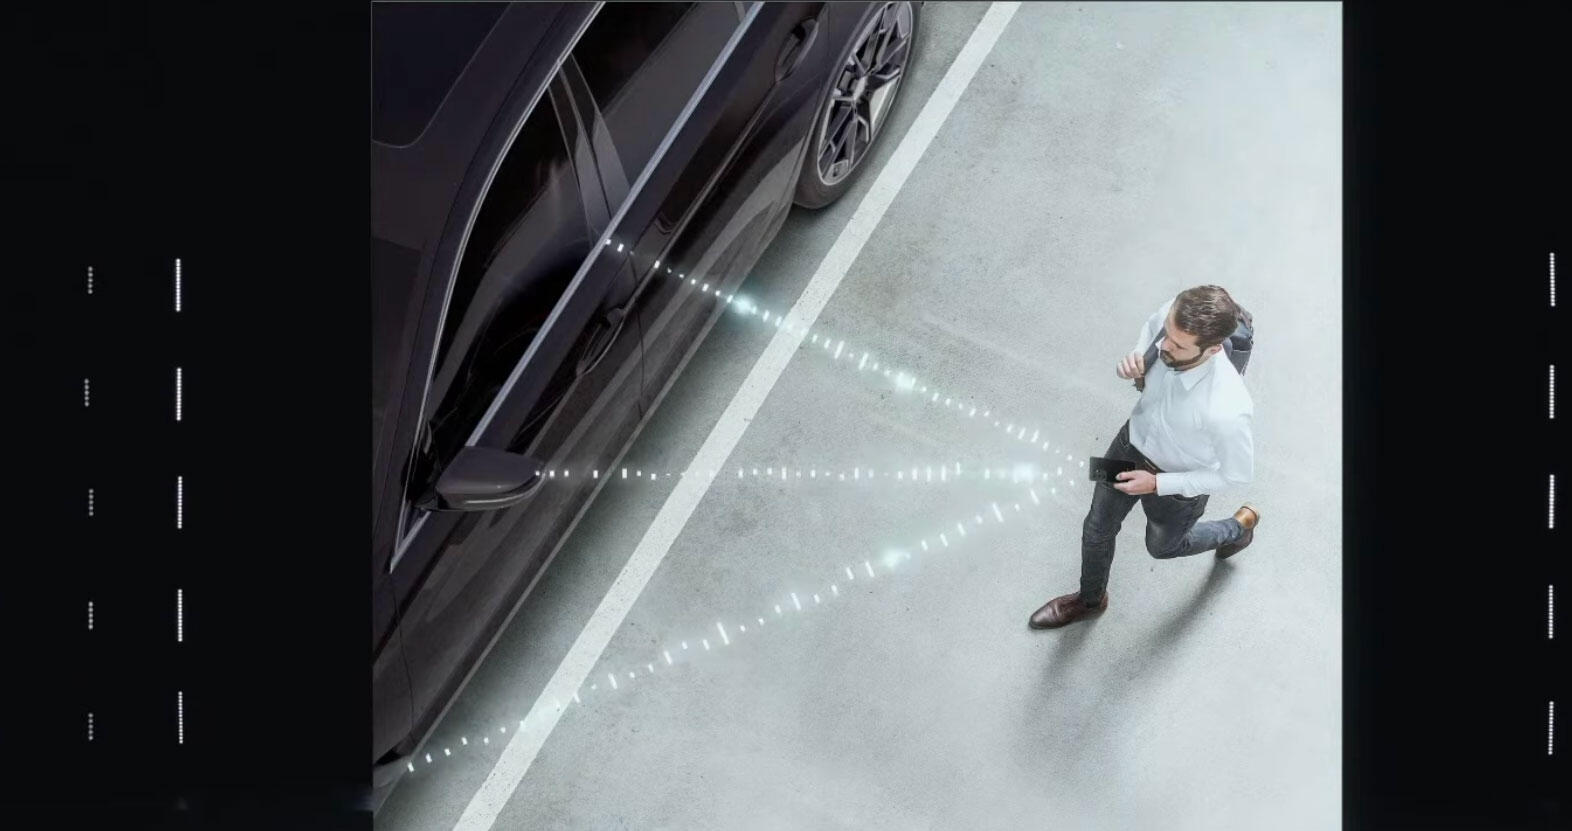 Samsung promises UWB technology for precisely tracking your location will automatically unlock car doors with digital keys in your smartphone.